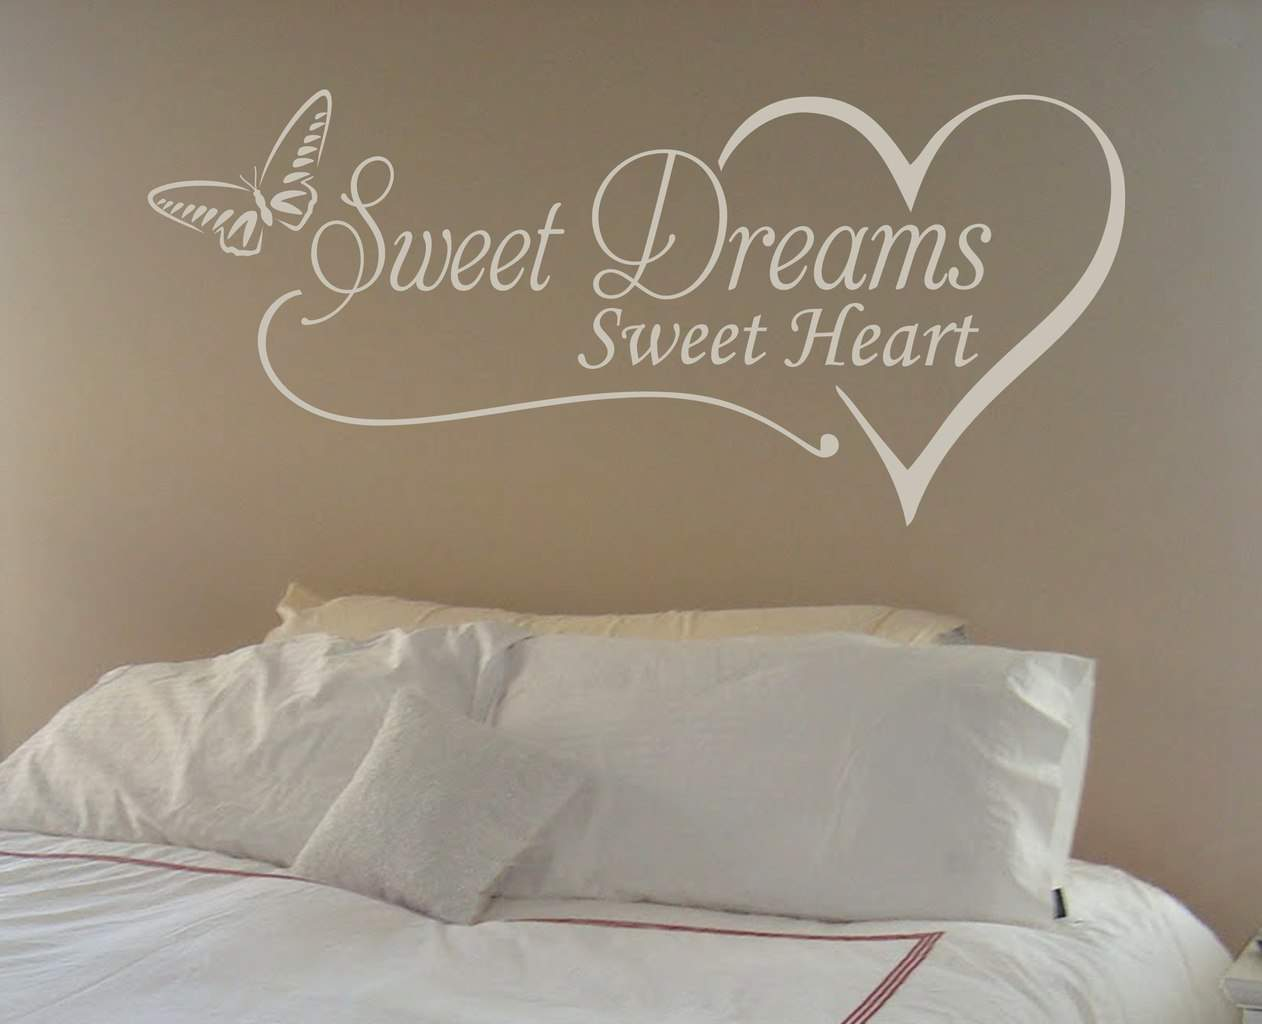 Sweet Dreams Sweet Heart Wall Decal Wall Decal